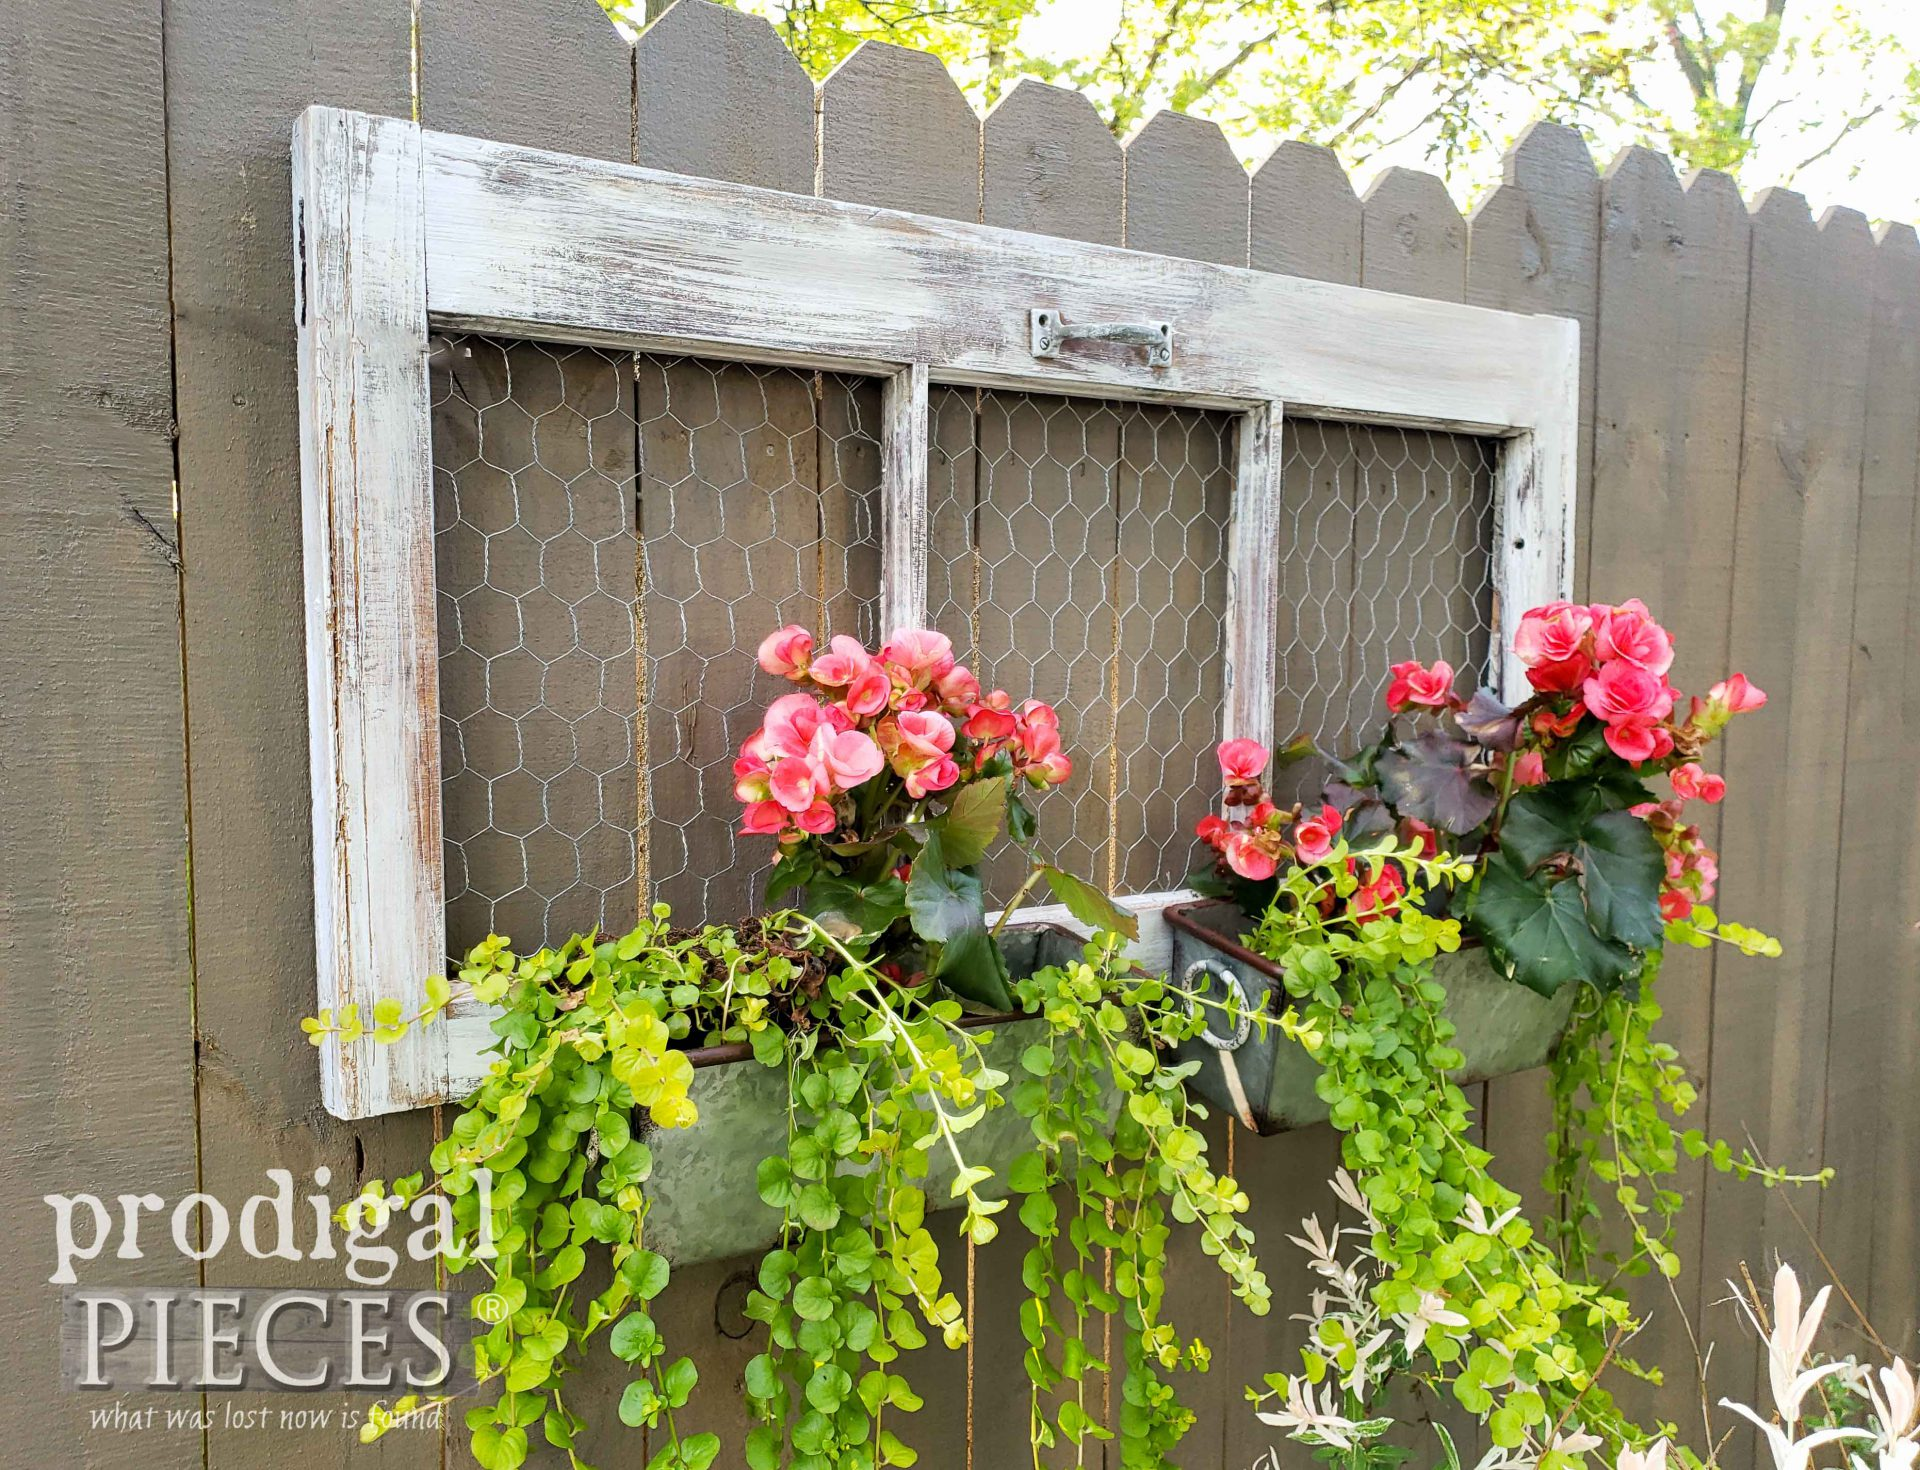 Farmhouse Style Upcycled Window Planter for Garden Decor by Larissa of Prodigal Pieces | prodigalpieces.com #prodigalpieces #home #garden #homedecor #diy #farmhouse